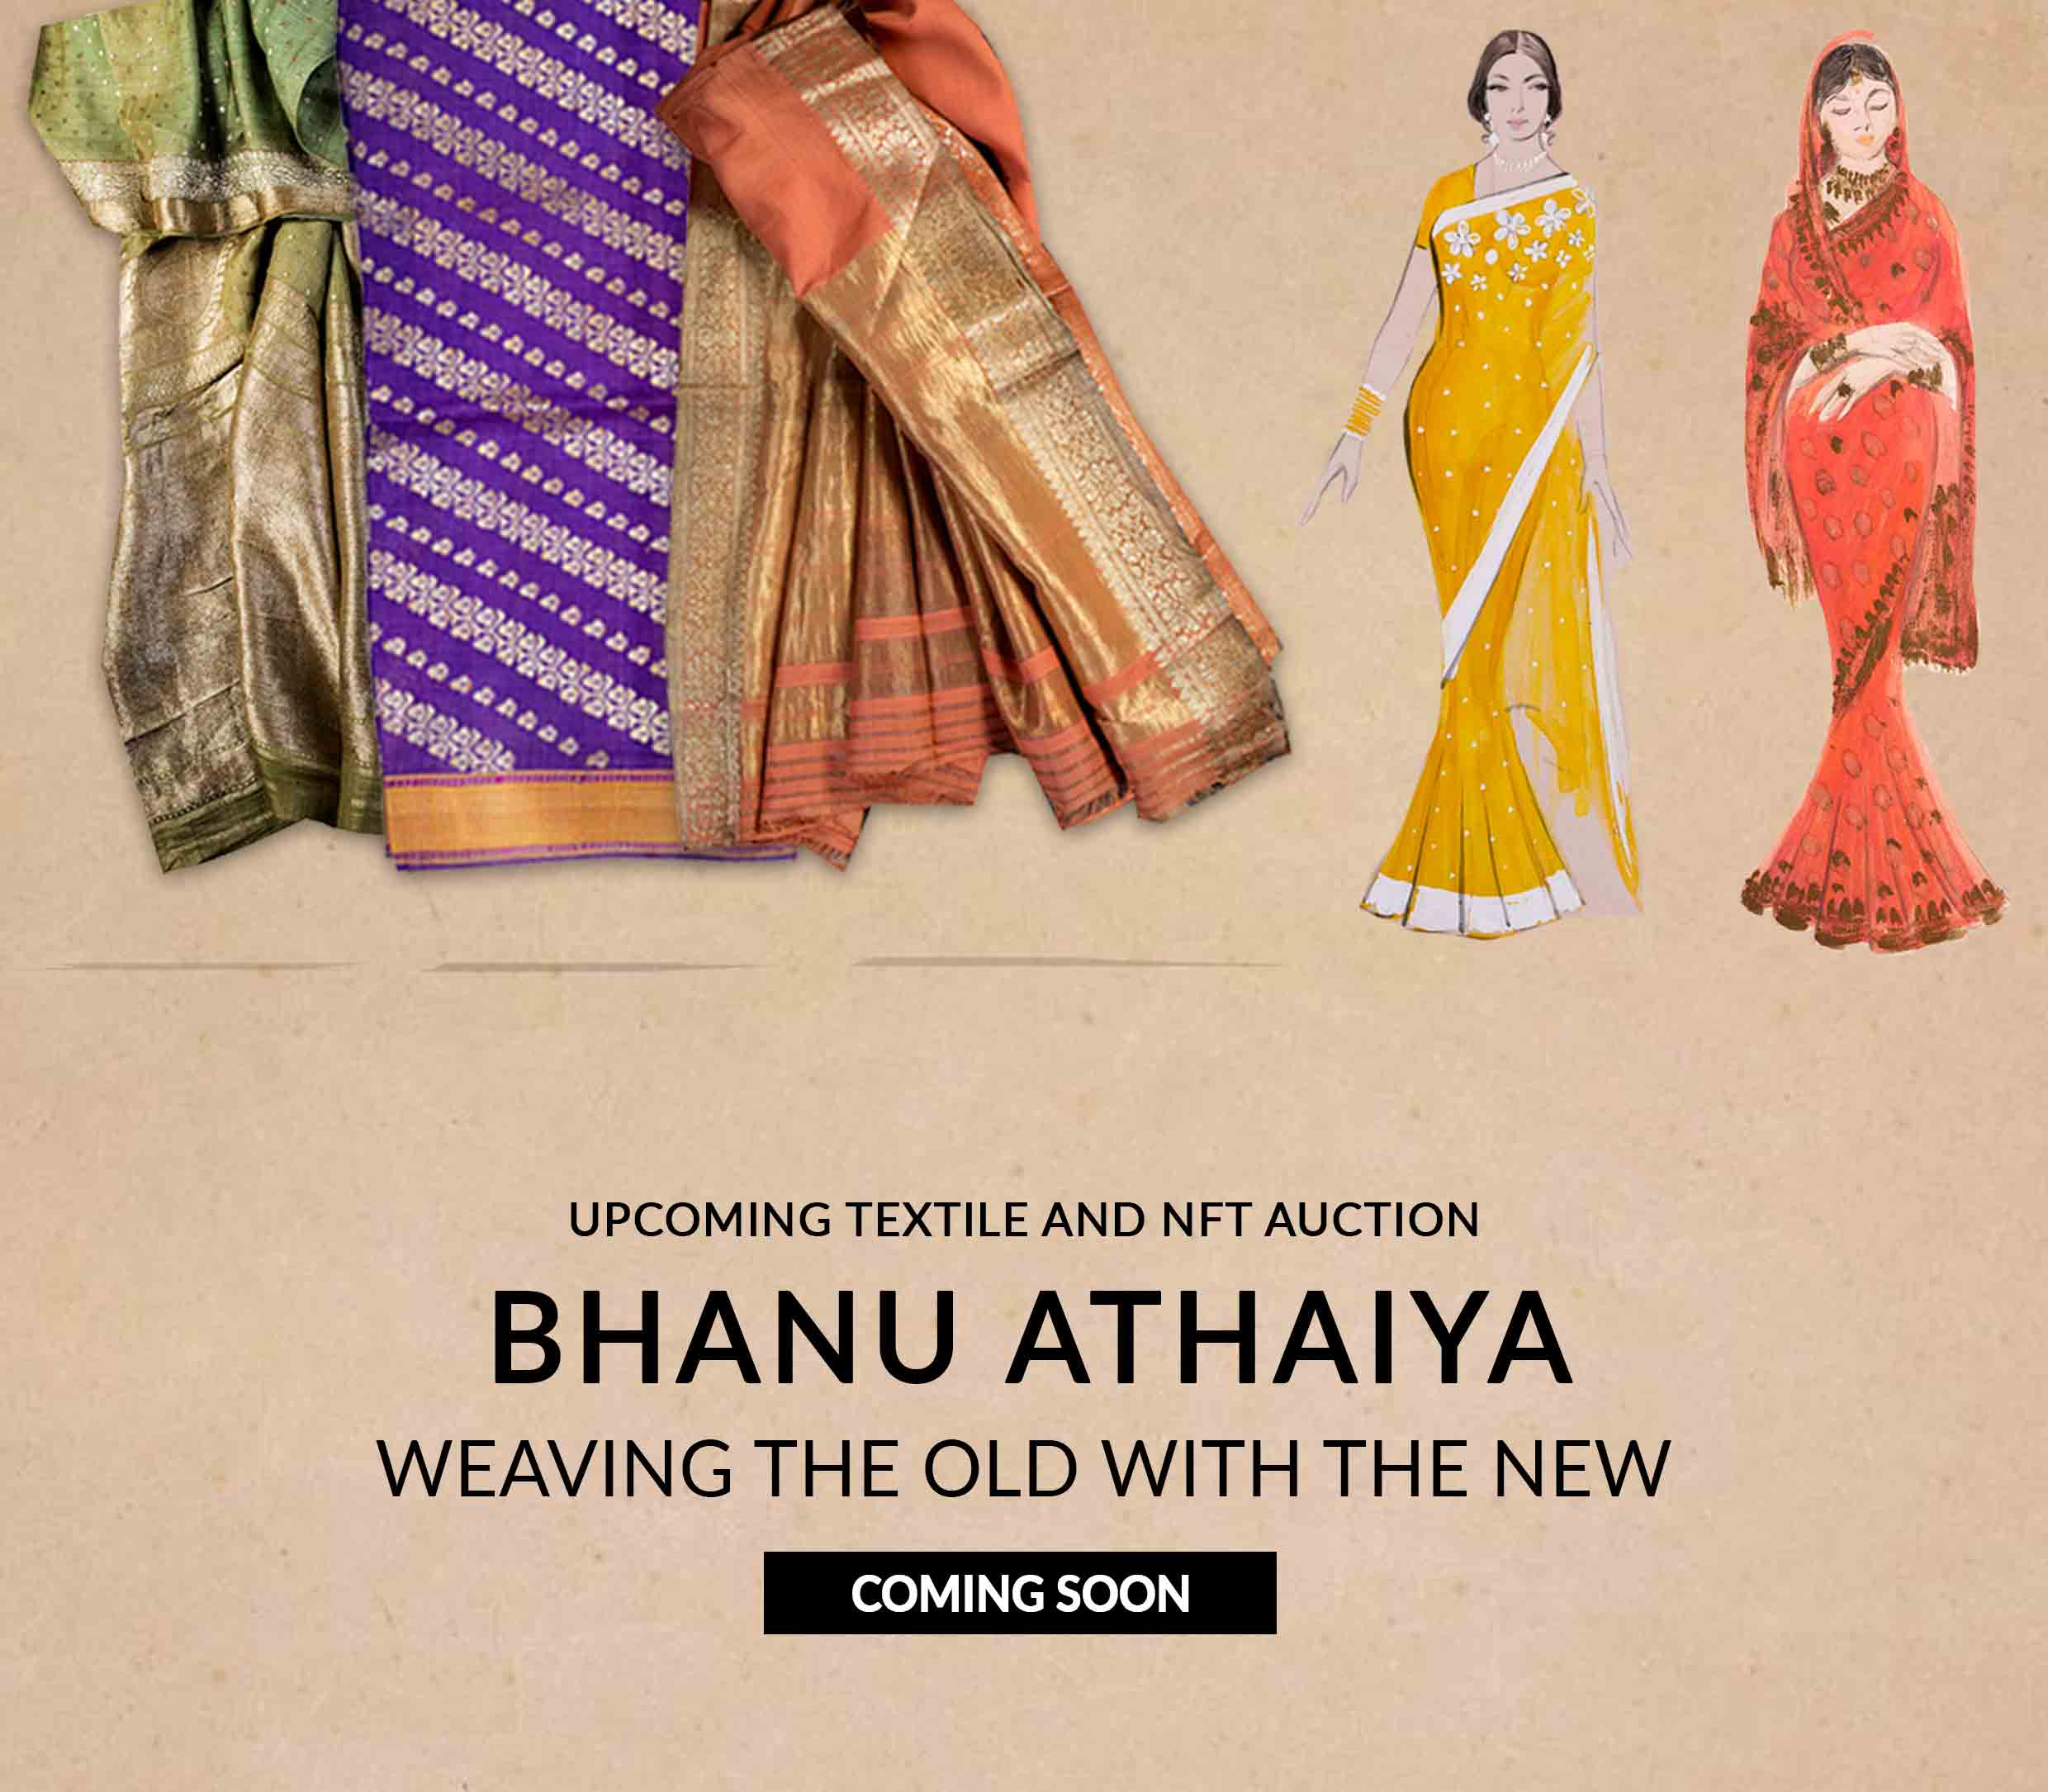 Bhanu Athaiya - Weaving the old with the new